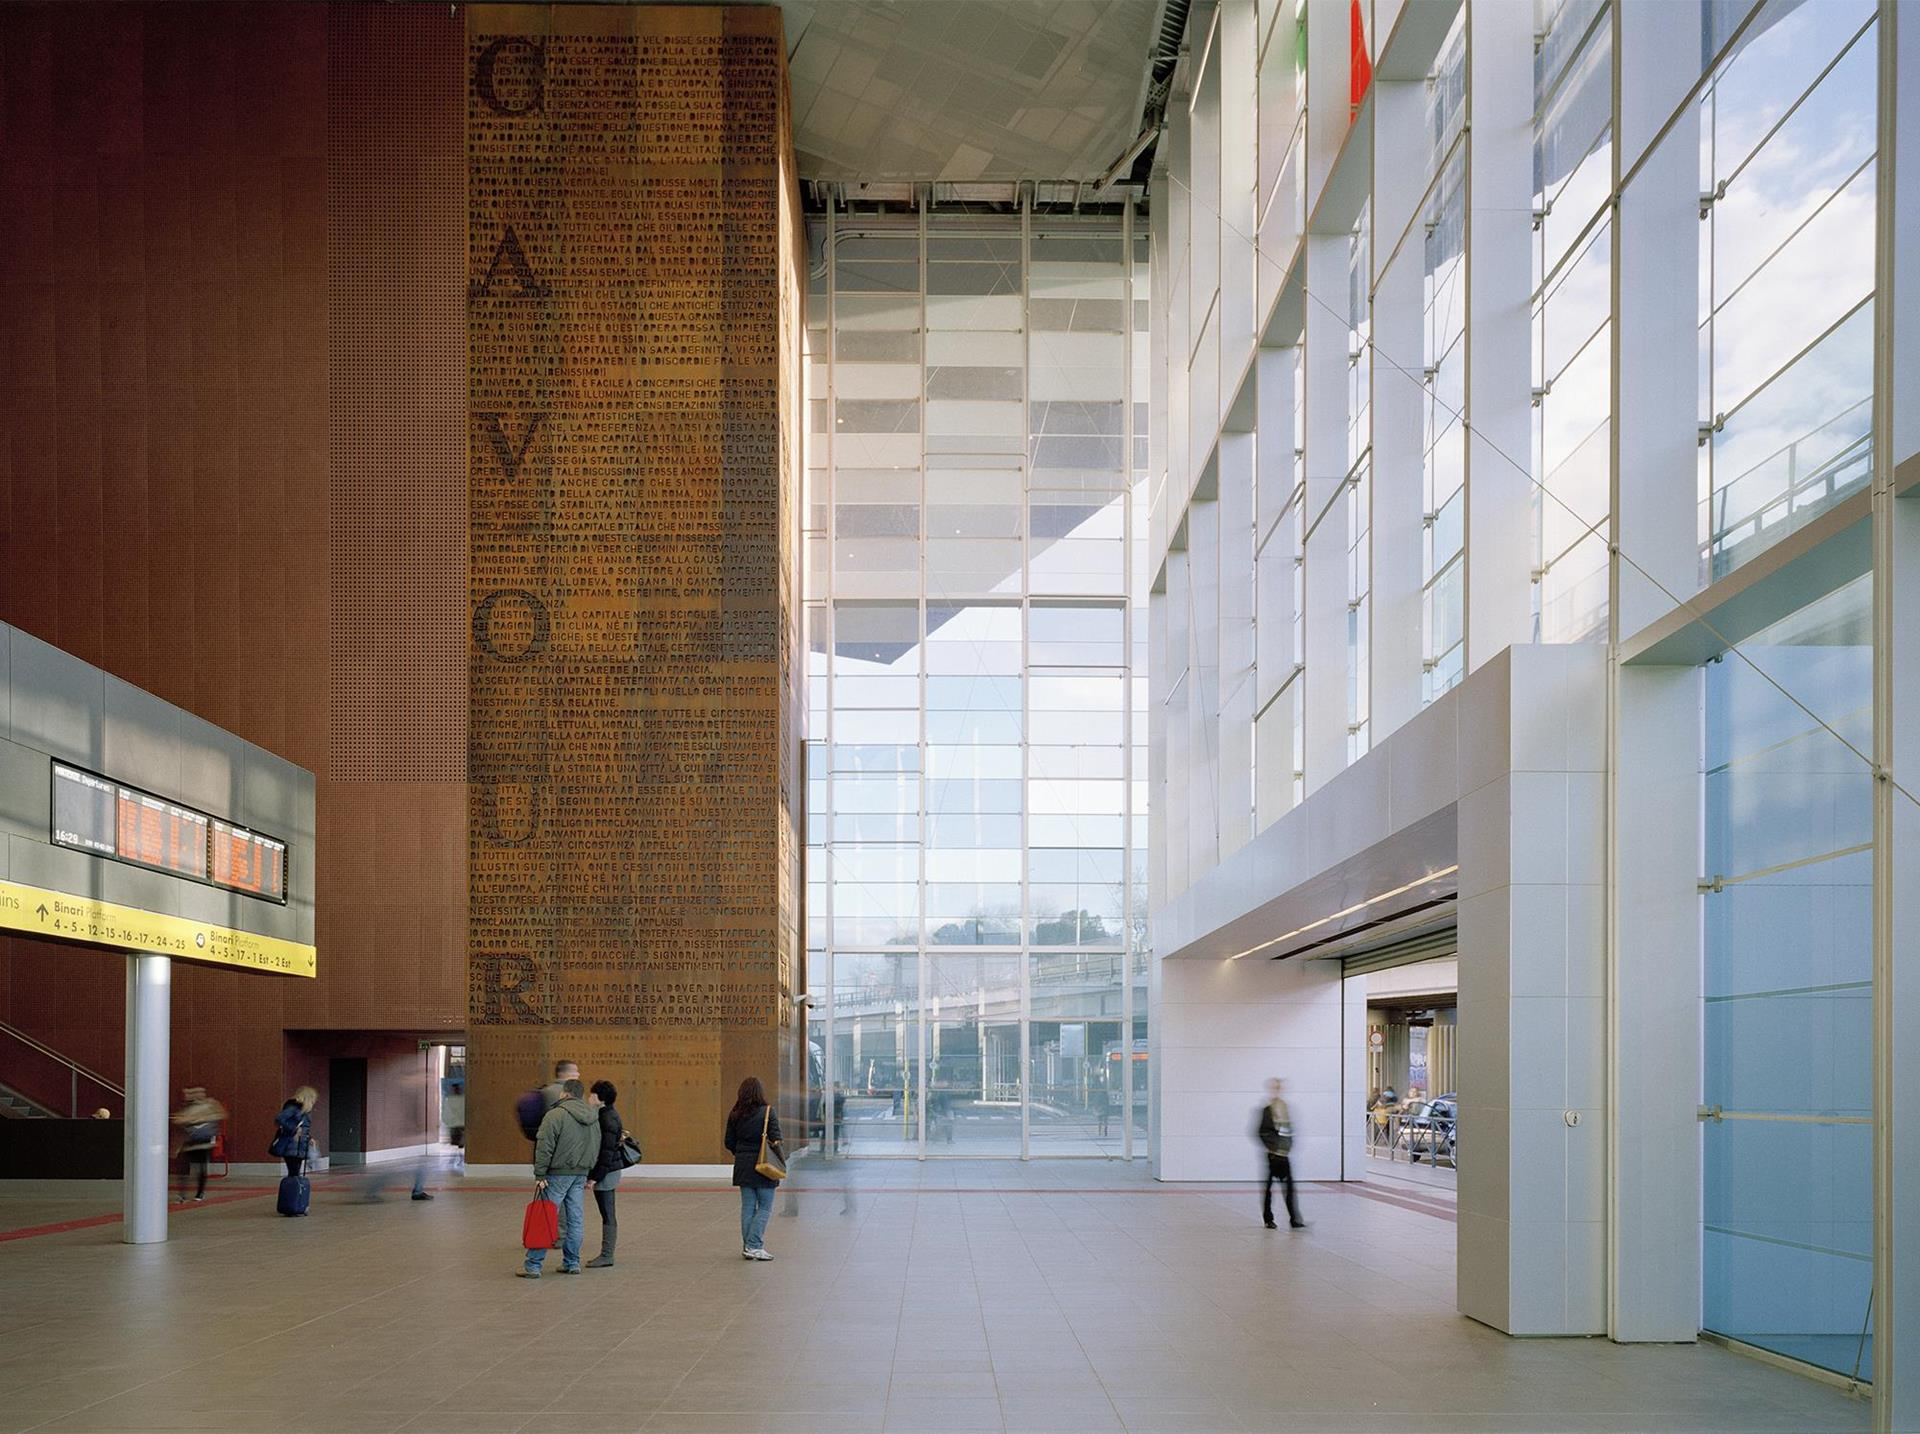 Roma Tiburtina Railway Station: Photo 1